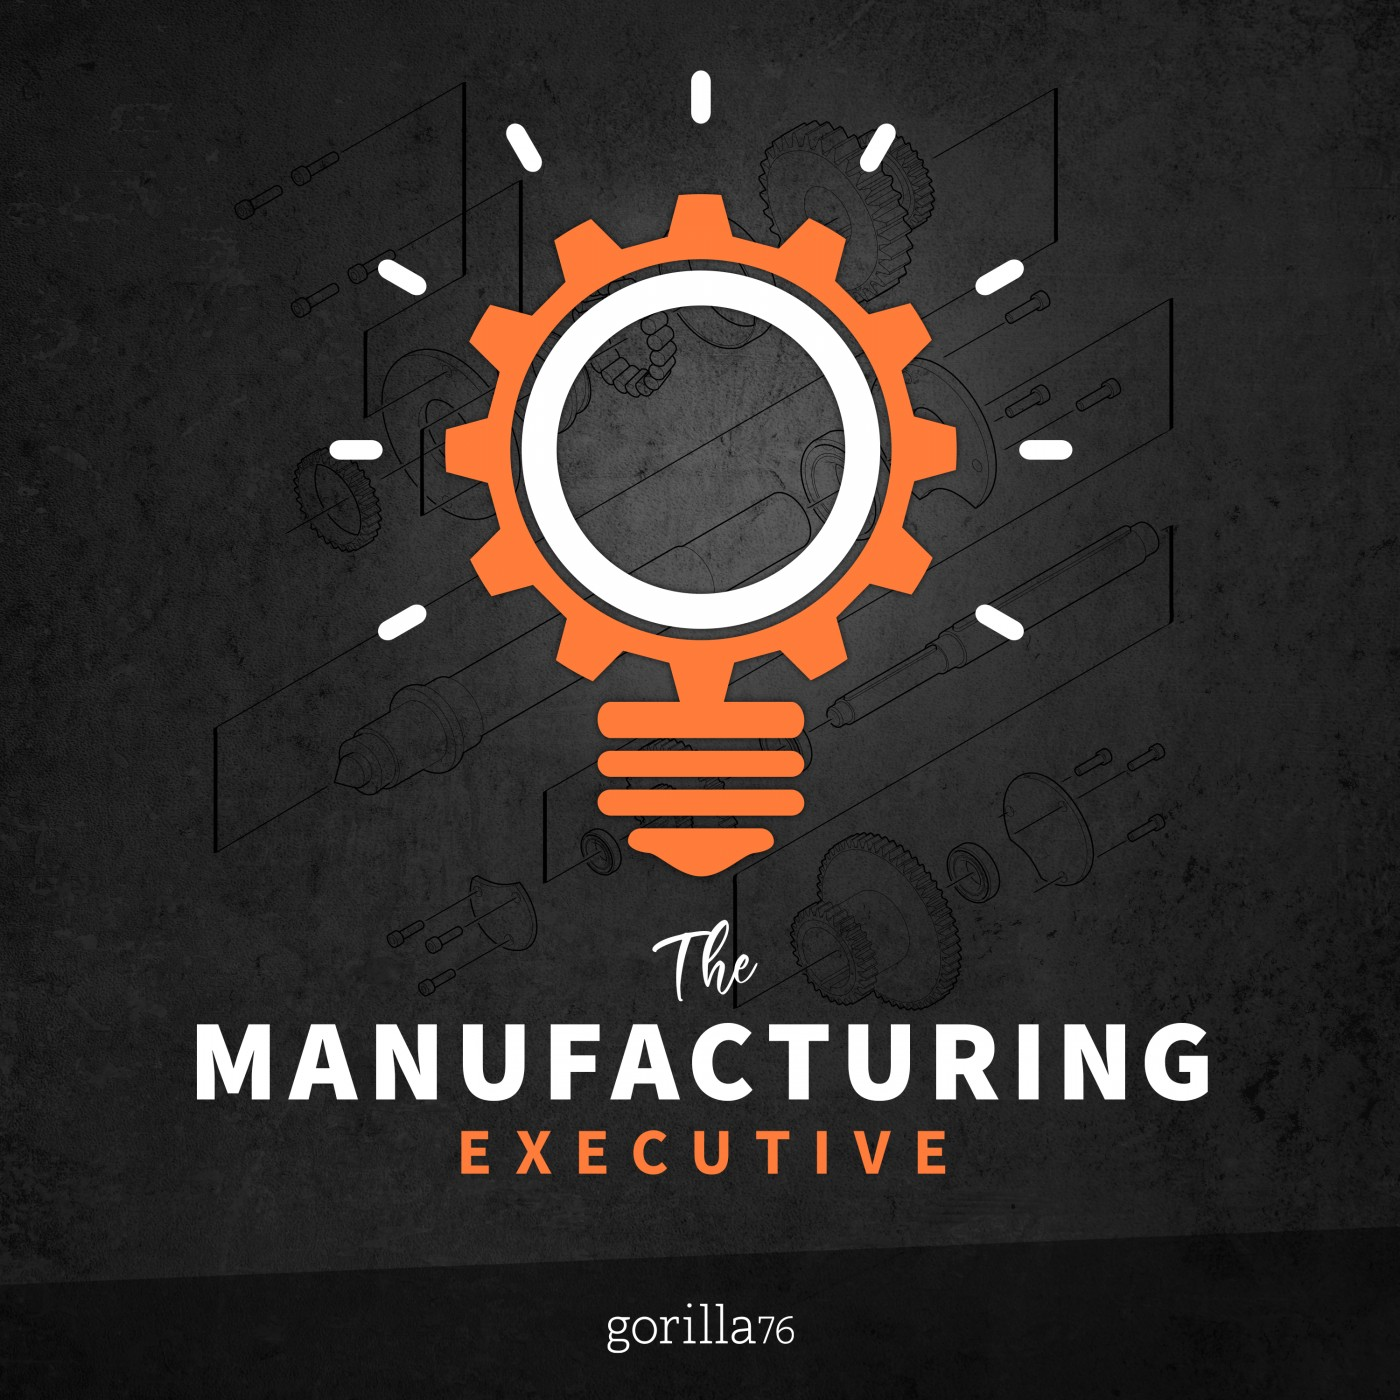 The Brightest Generation: New Leadership in Manufacturing w/ Paul Brauss